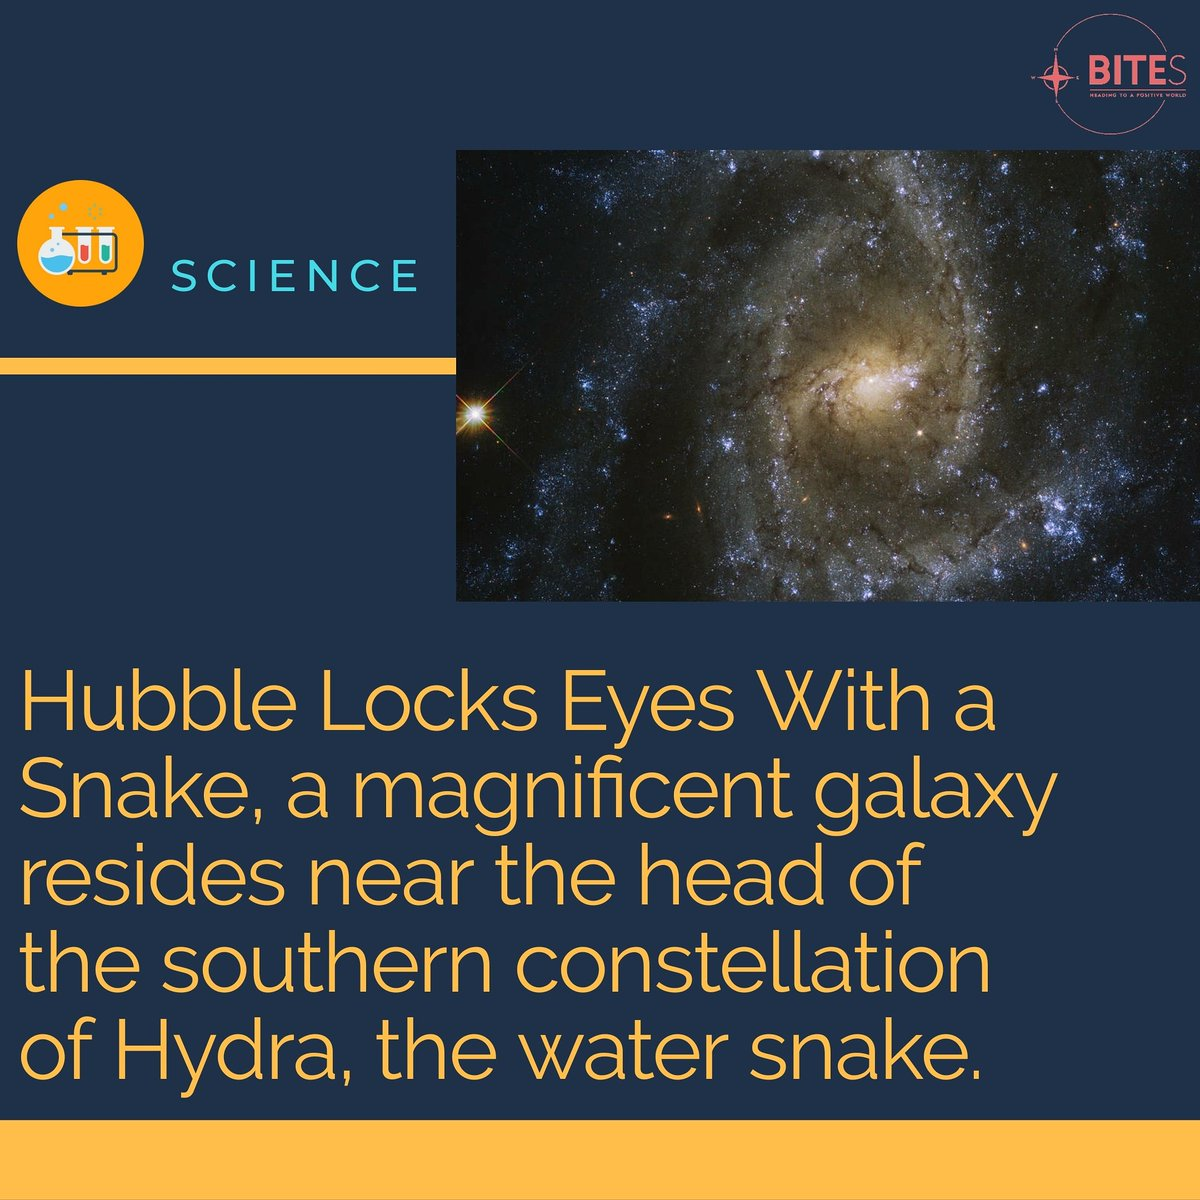 @DigitalTrends This stunningbarred spiral galaxy, with a width of just over half that of the Milky Way, is brilliantly featured in this image taken by theNASA/ESA Hubble Space Telescope. #nasa #galaxy #discovery #hubble #watersnake  https://t.co/Sv1kkP8Aj9 https://t.co/95rncVTupR